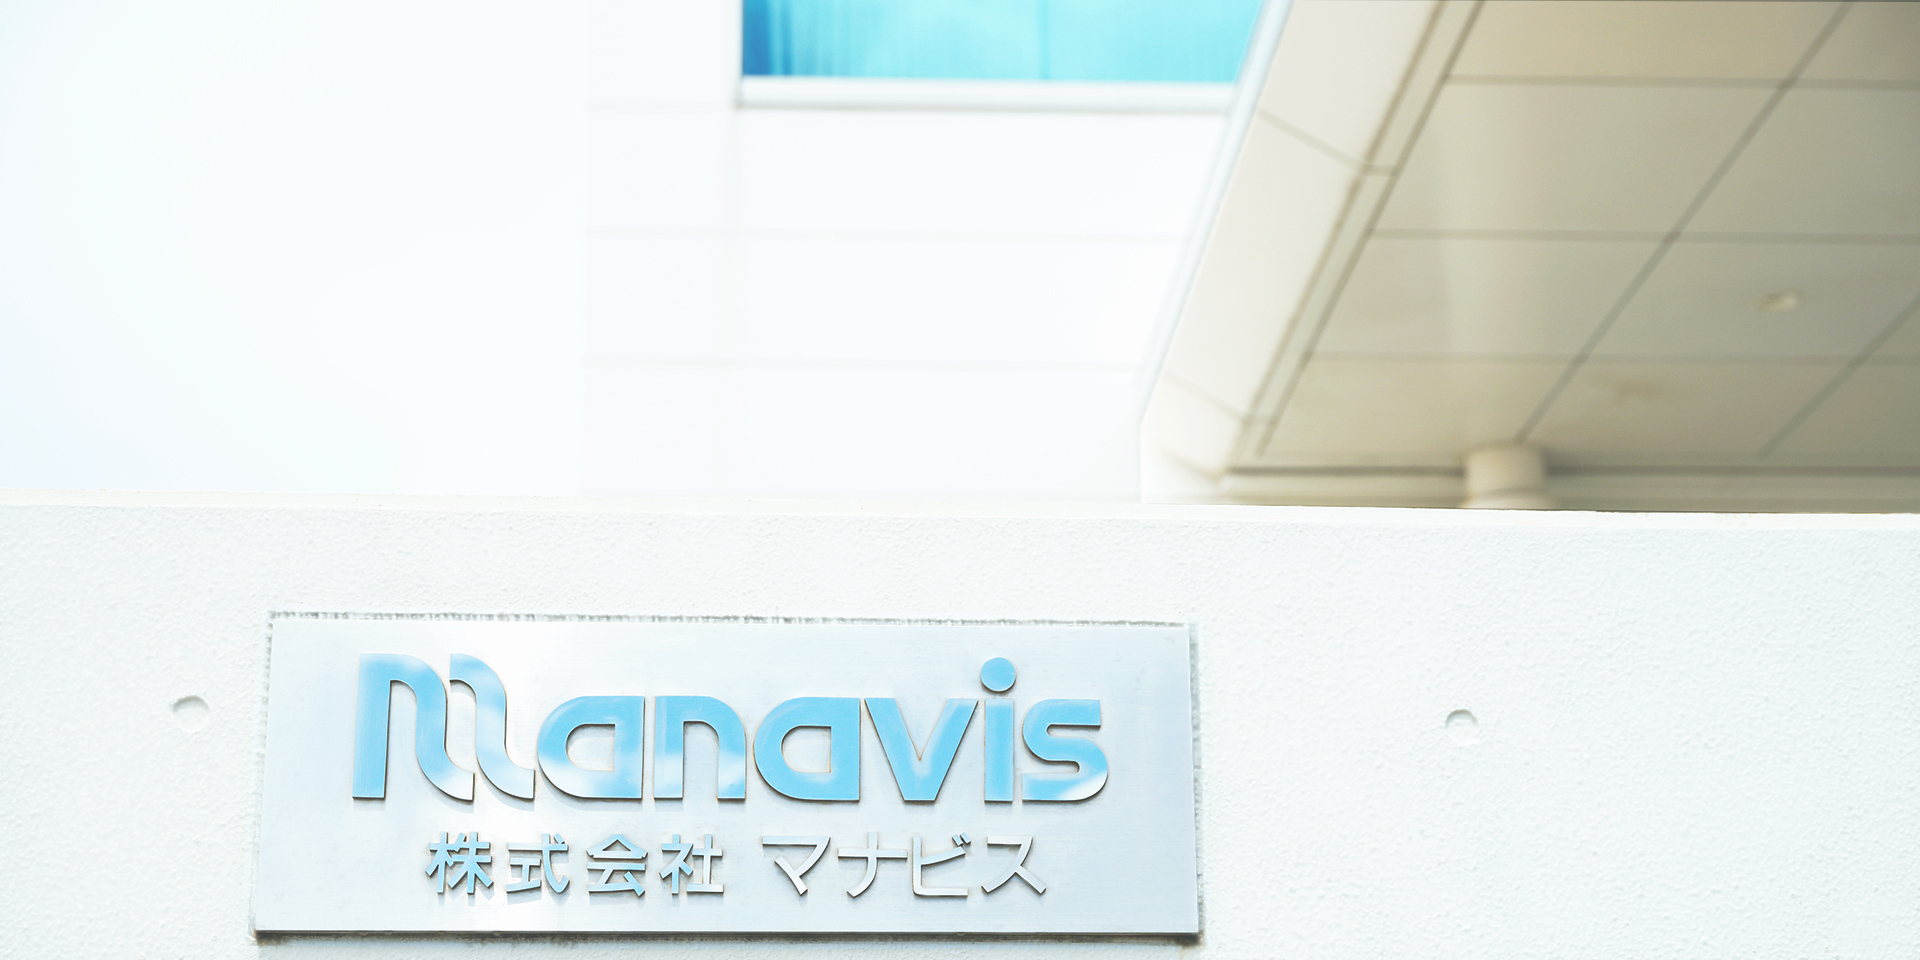 Announcement from Manavis